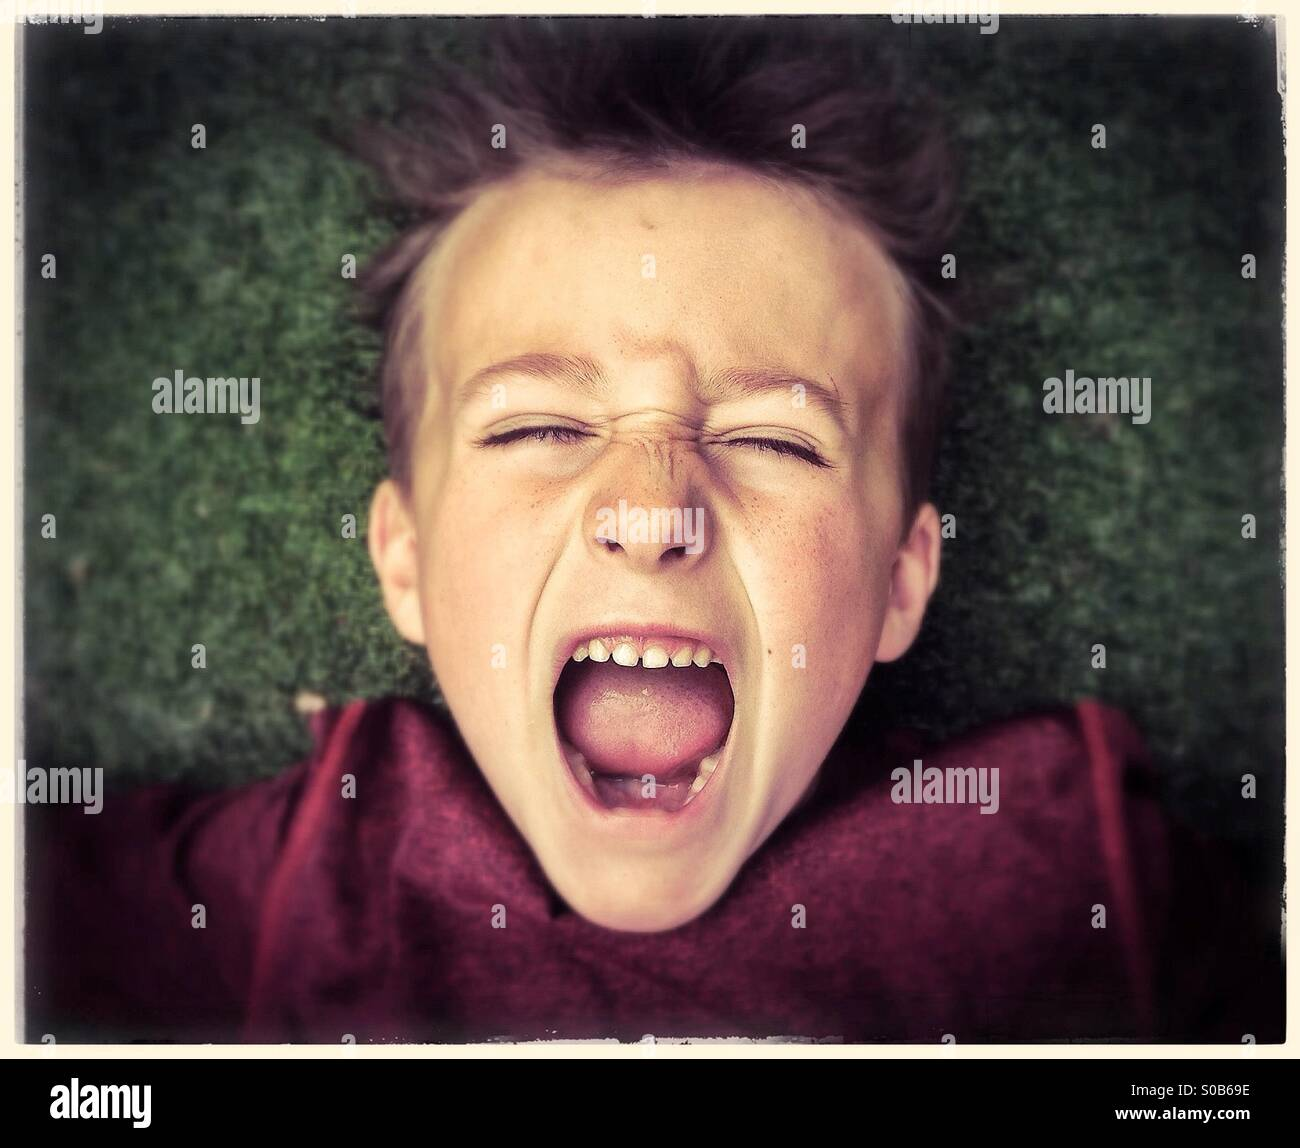 Clouse up of a boy, screaming loudly with eyes closed. Boy excited and happy - Stock Image